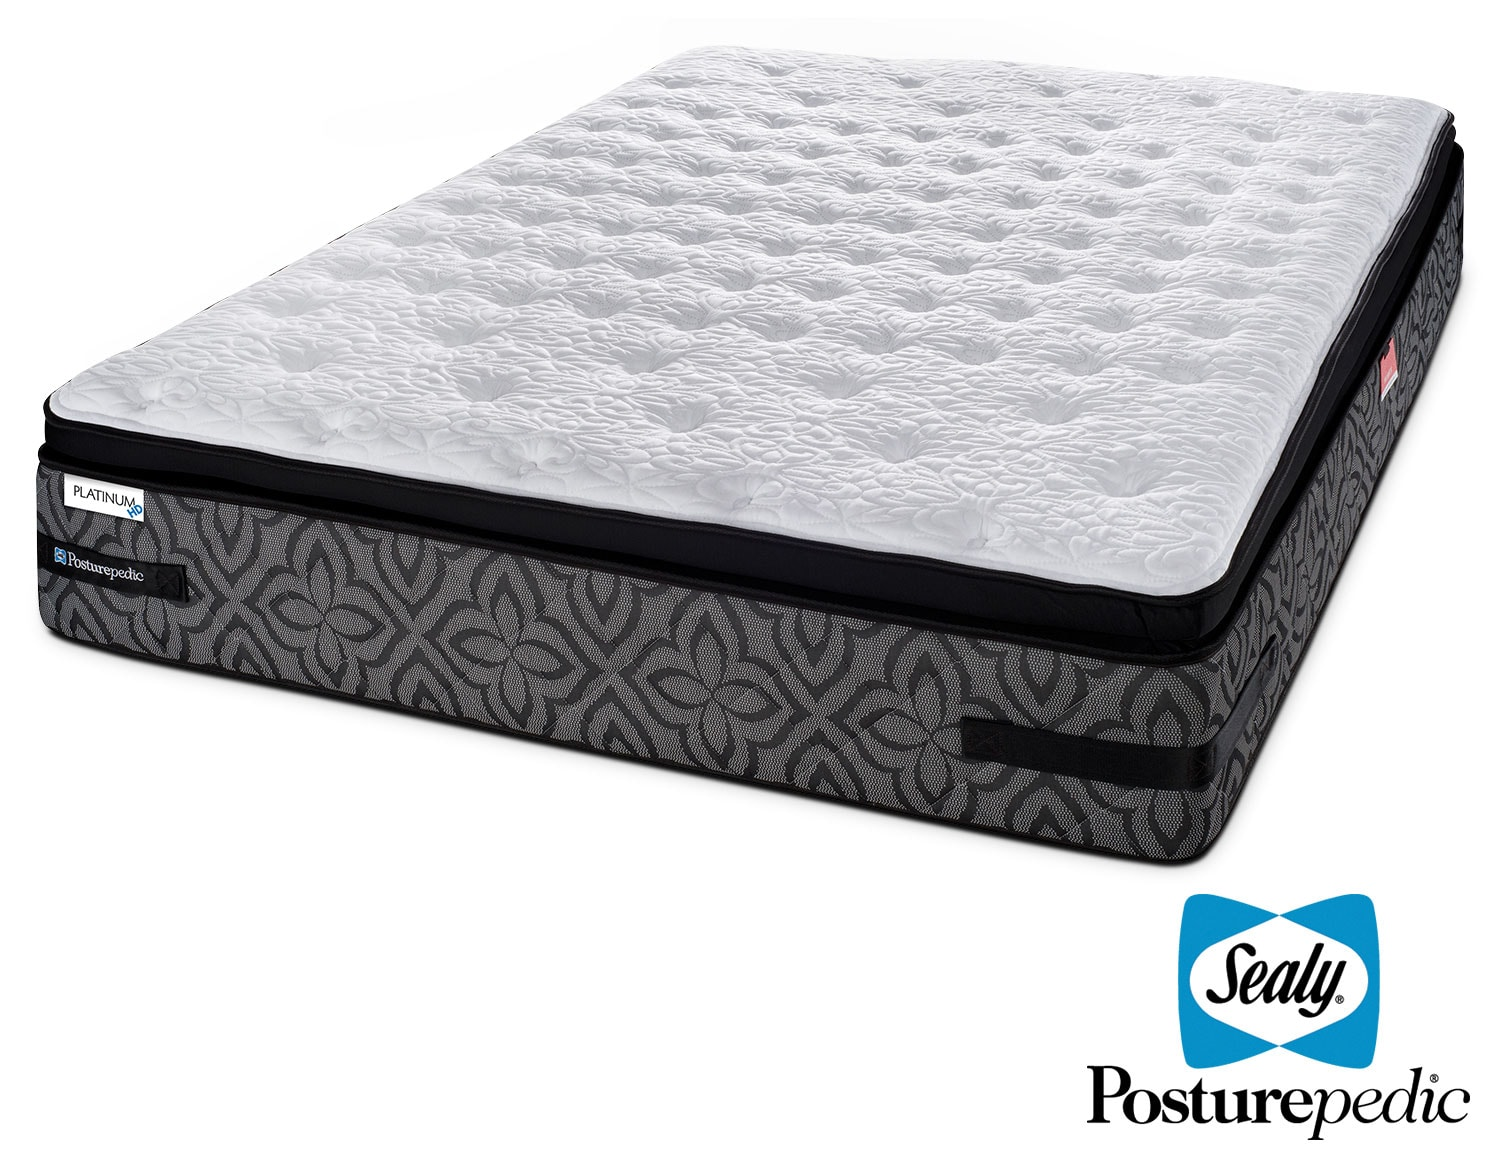 Mattresses and Bedding - Sealy Posturepedic 2 K Firm Full Mattress